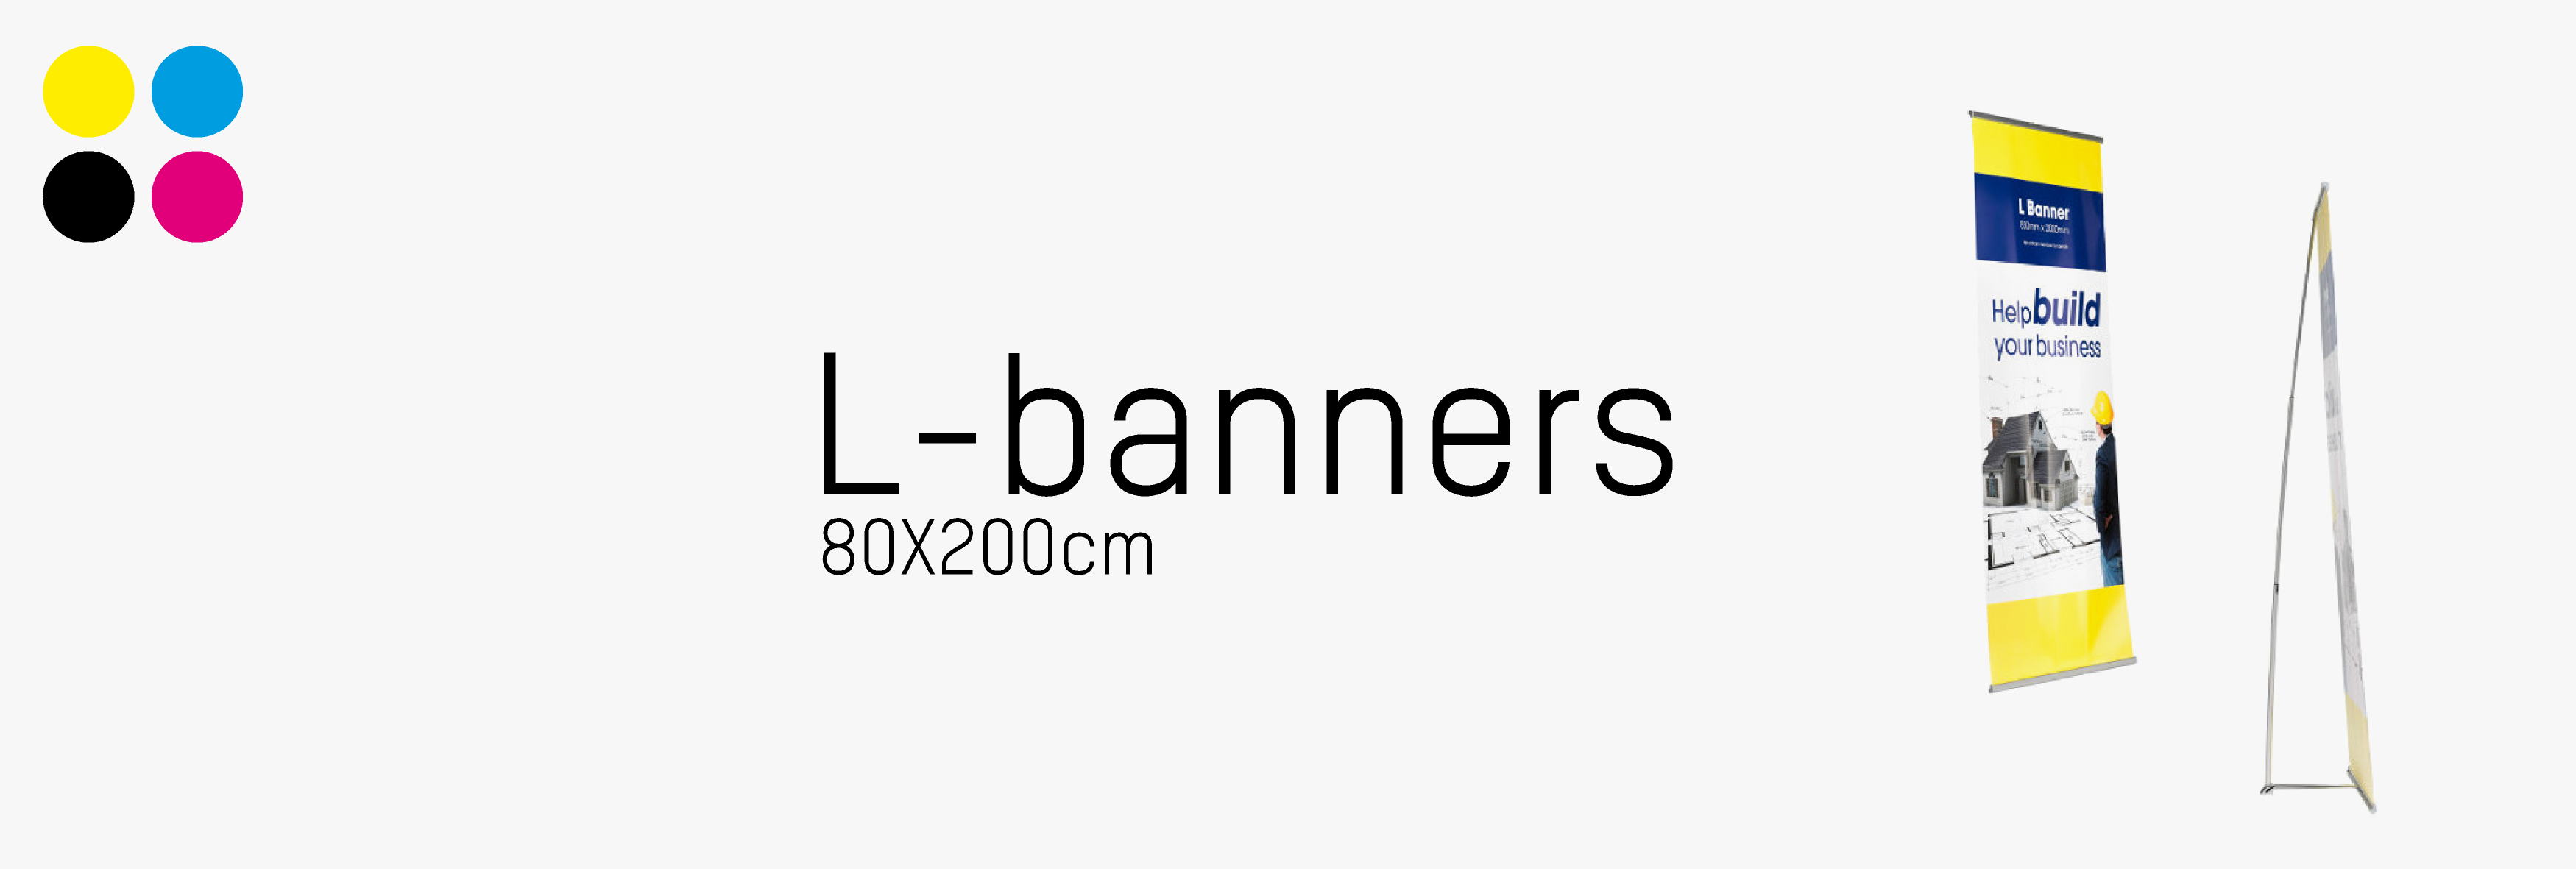 L-banners-80x200cm